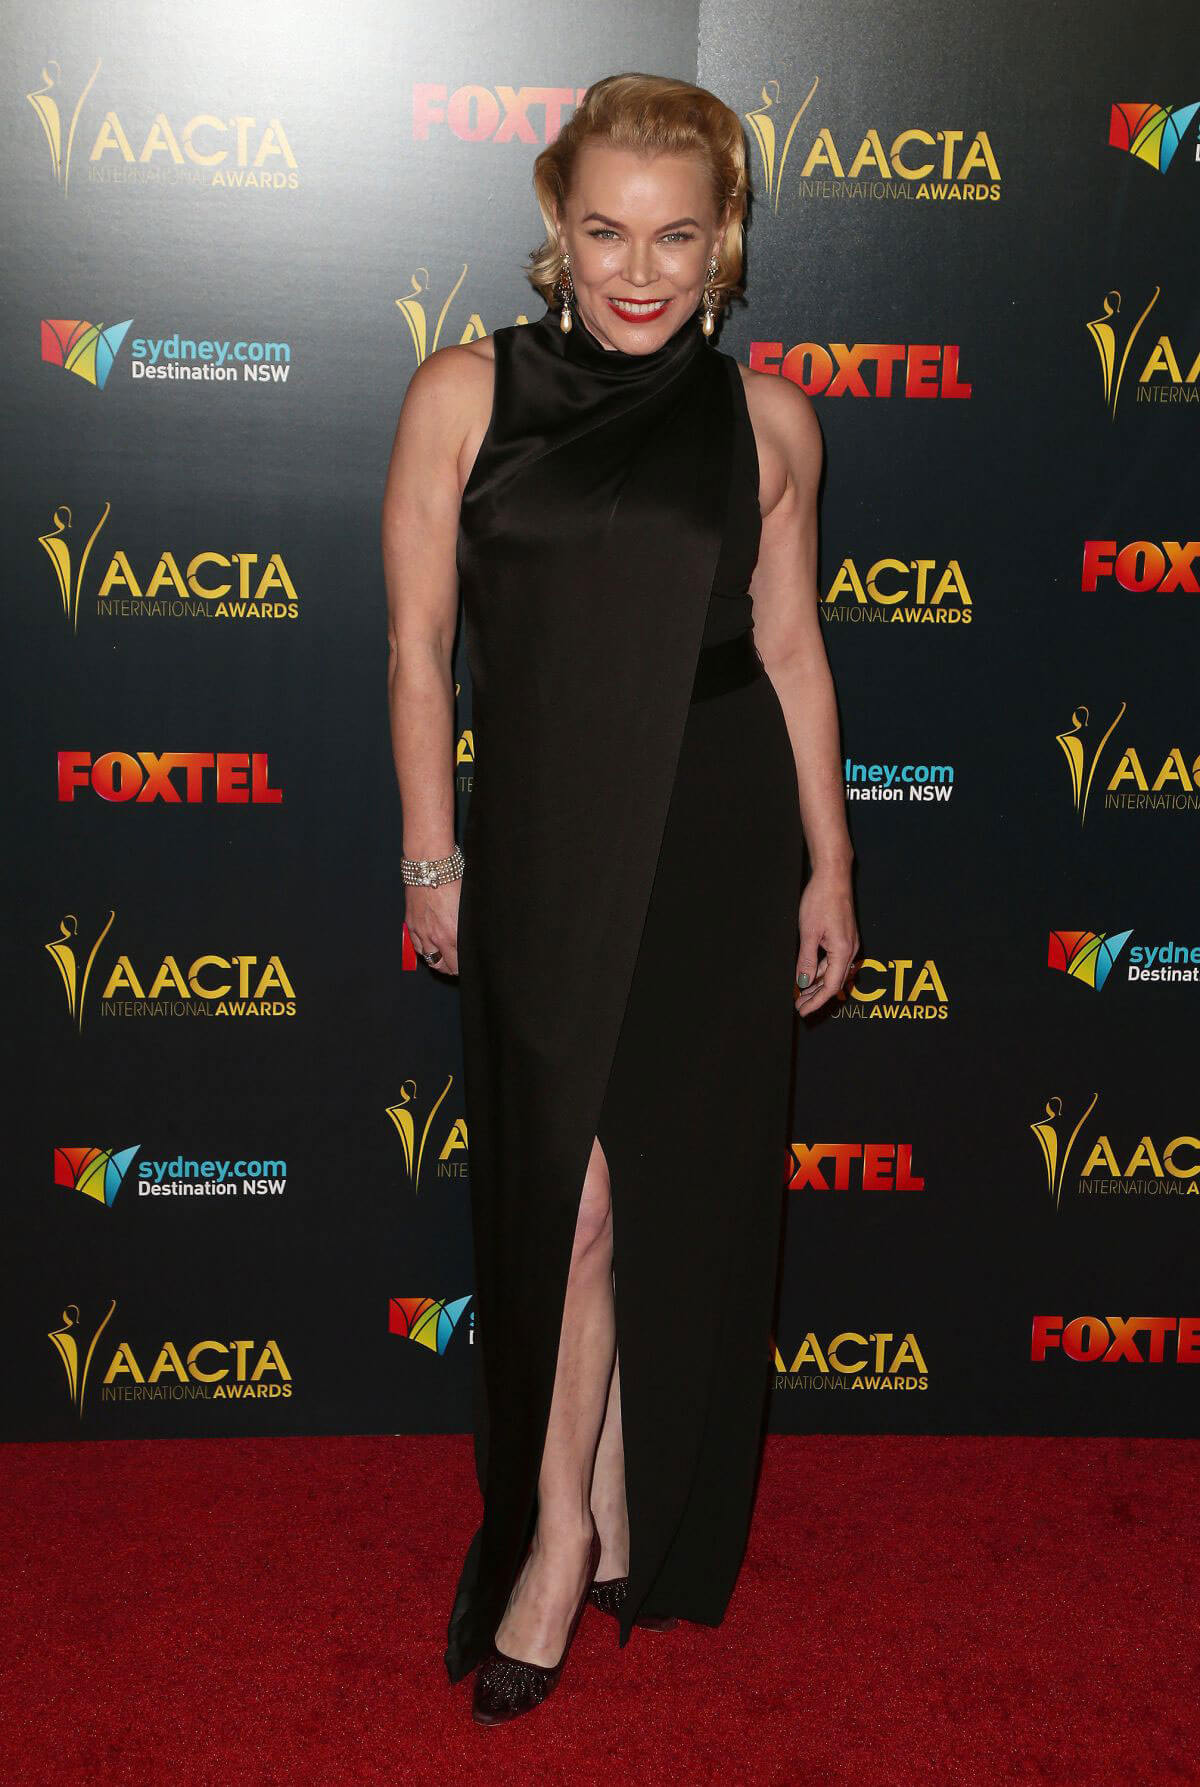 Kym Wilson at AACTA International Awards 2017 in Hollywood